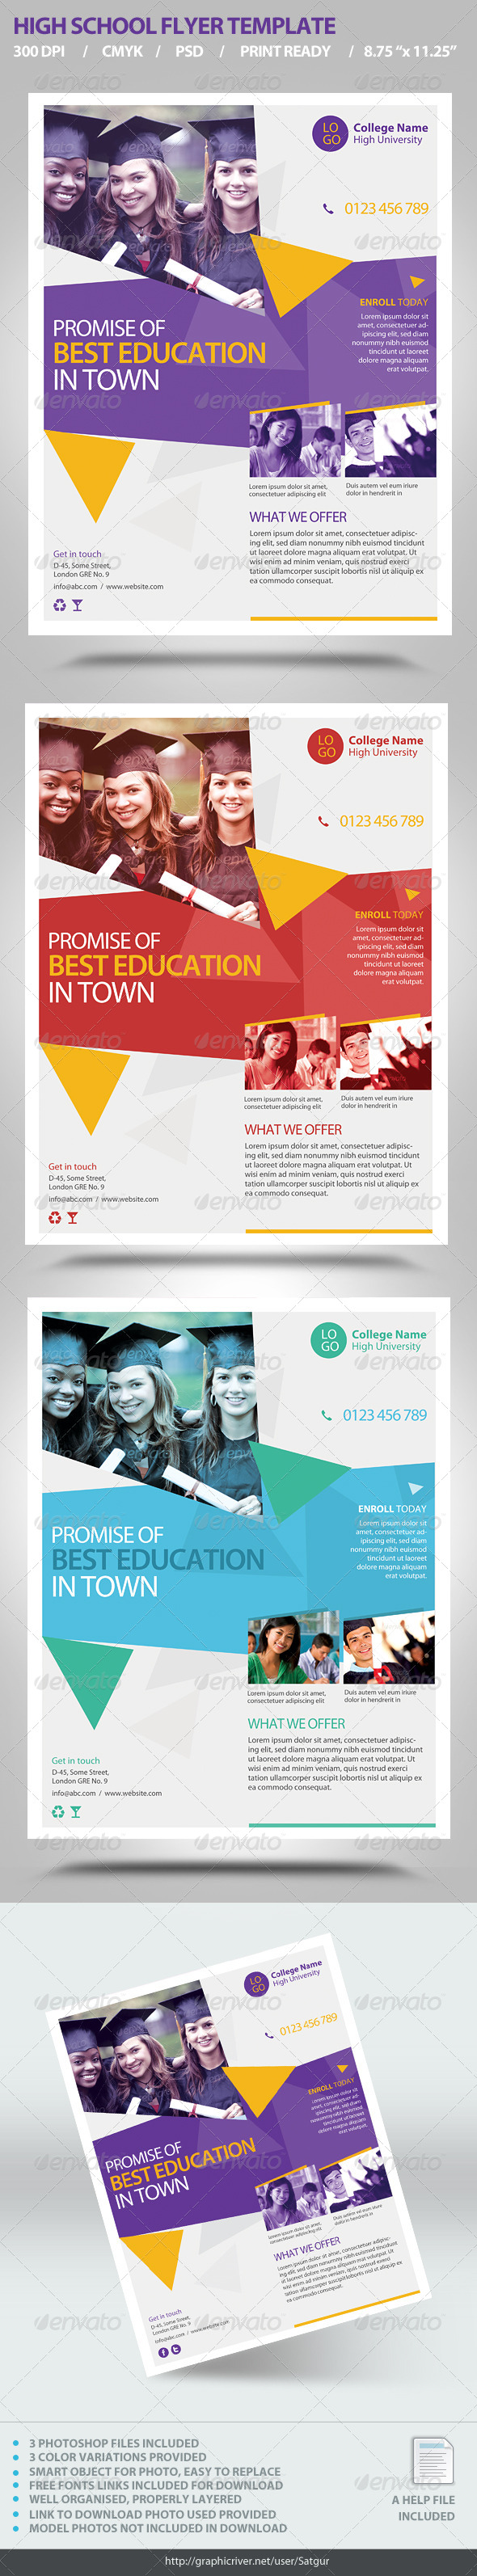 High School Flyer Template - Corporate Flyers